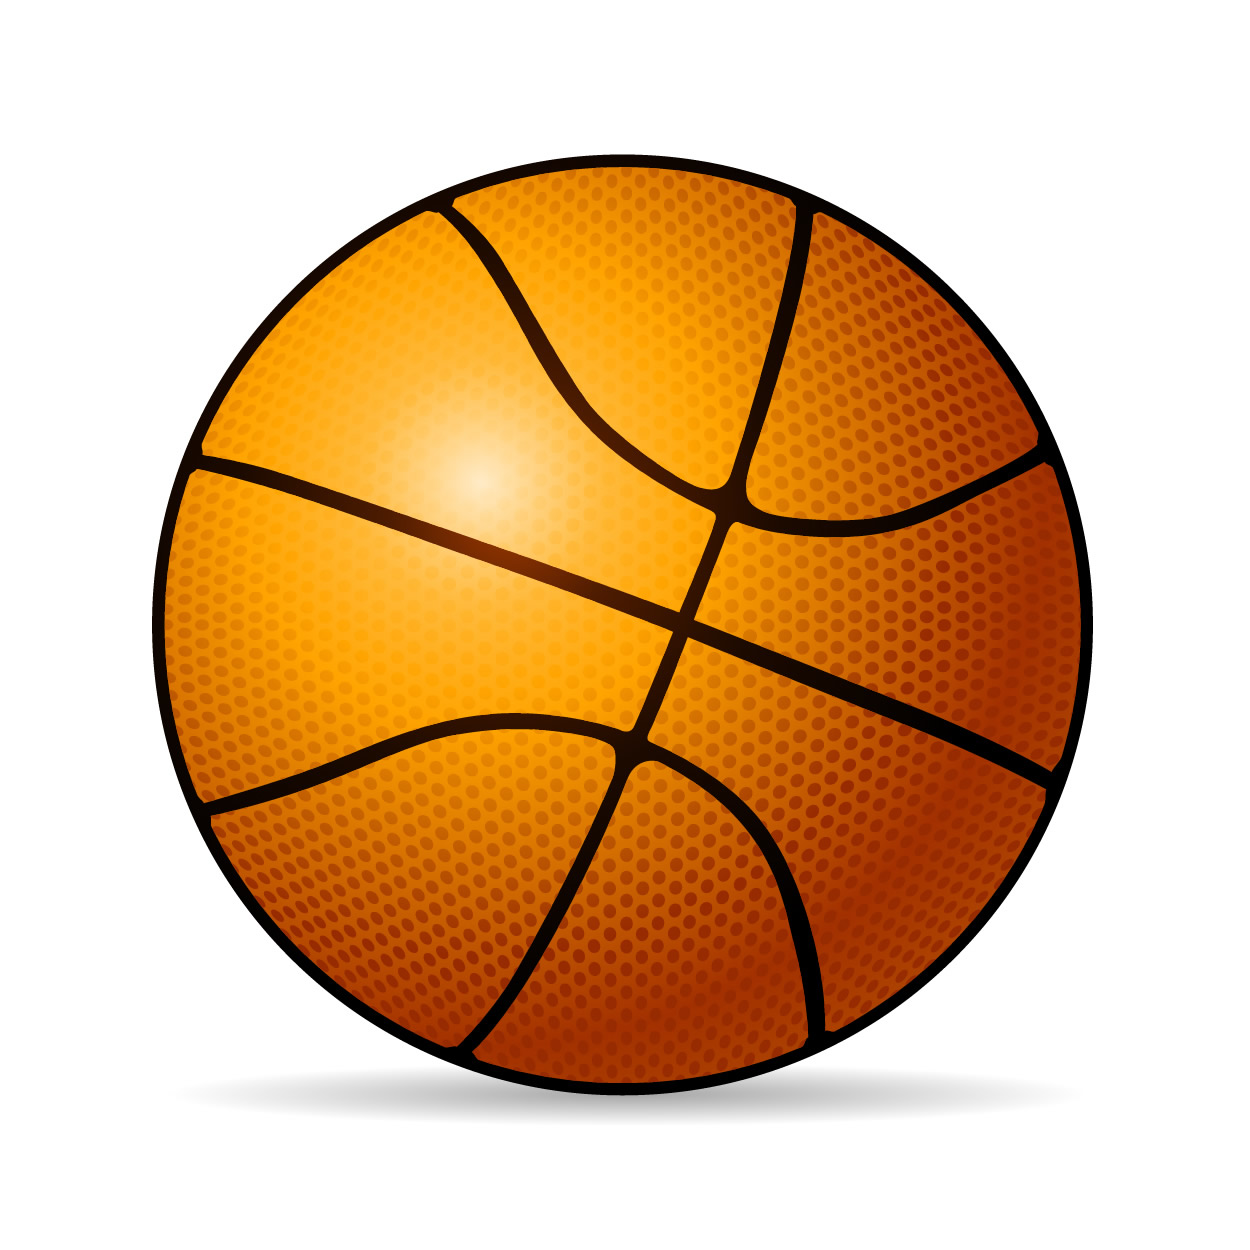 1250x1250 Ball Clipart Cartoon Basketball